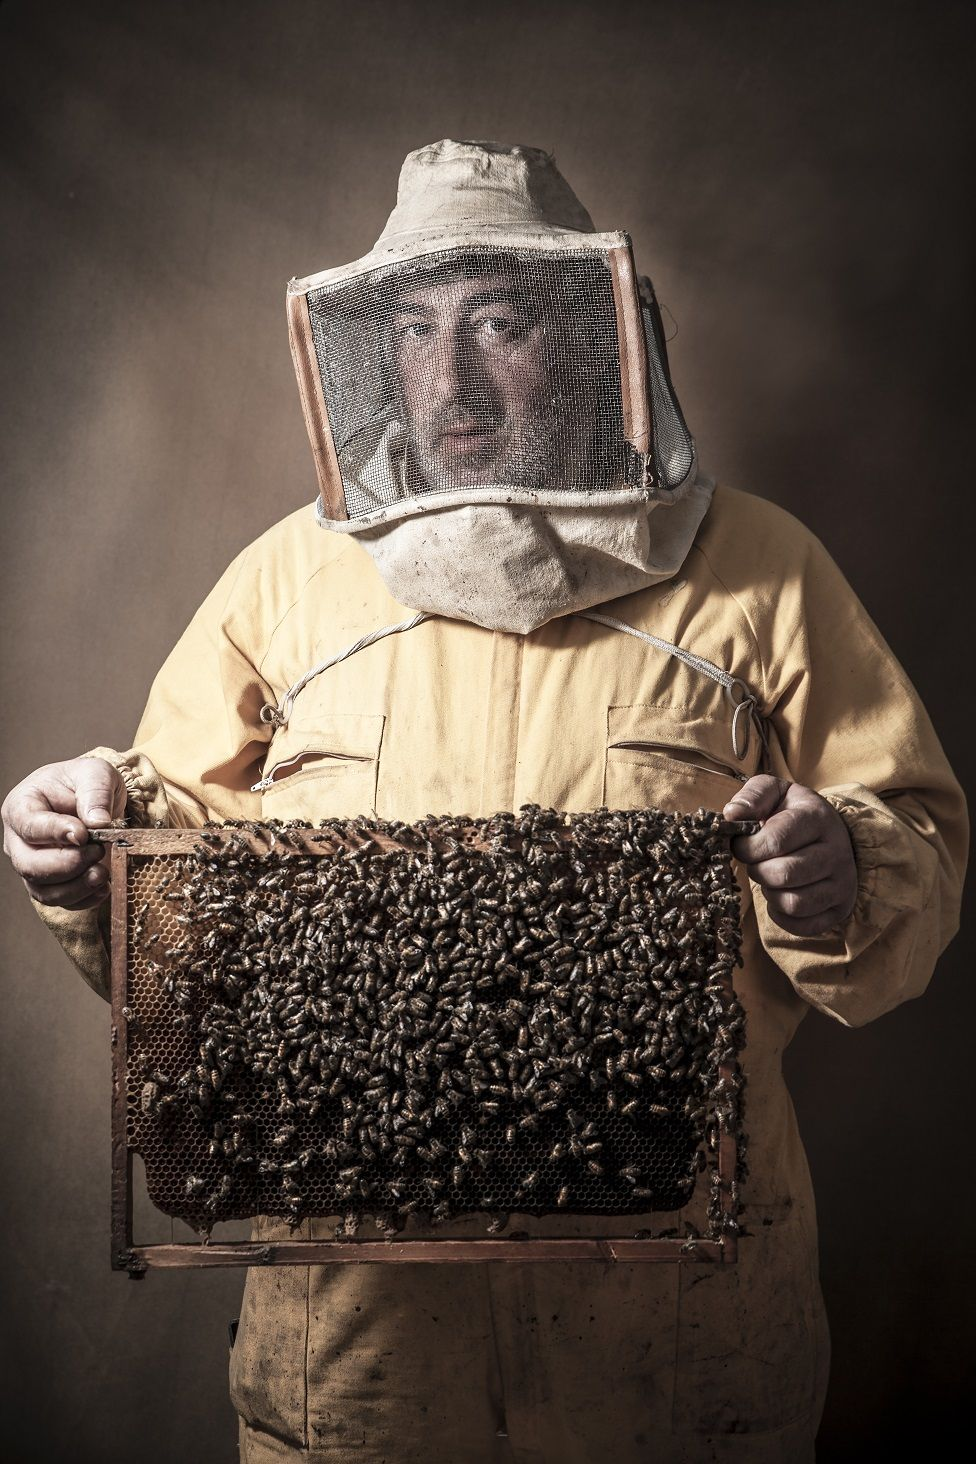 A portrait of a beekeeper holding honeycomb with bees